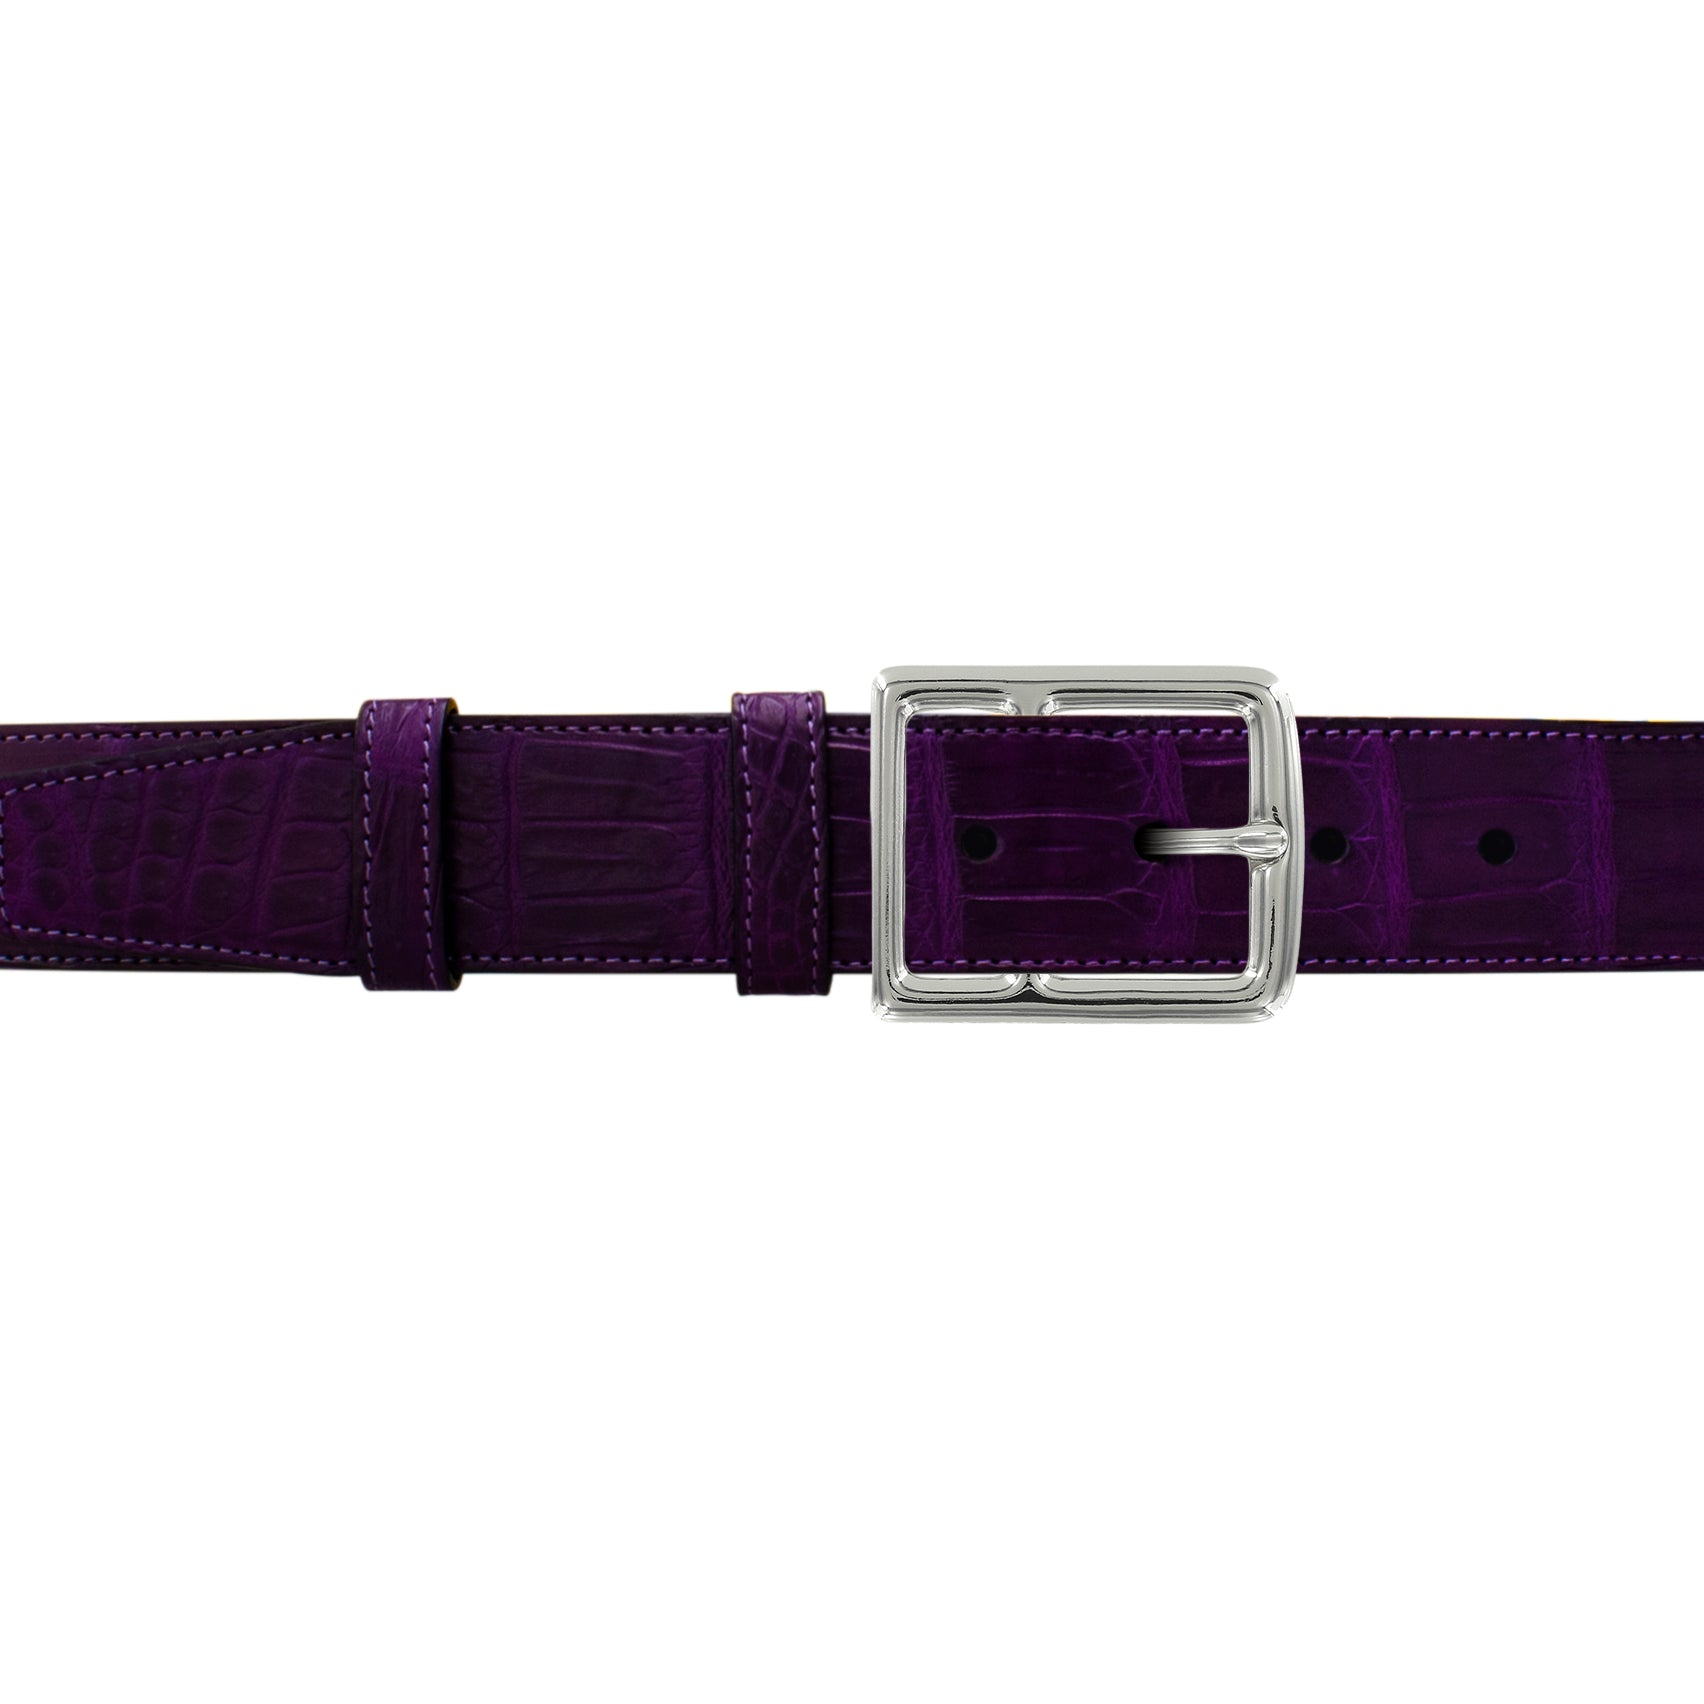 "1 1/2"" Violet Seasonal Belt with Crawford Casual Buckle in Polished Nickel"